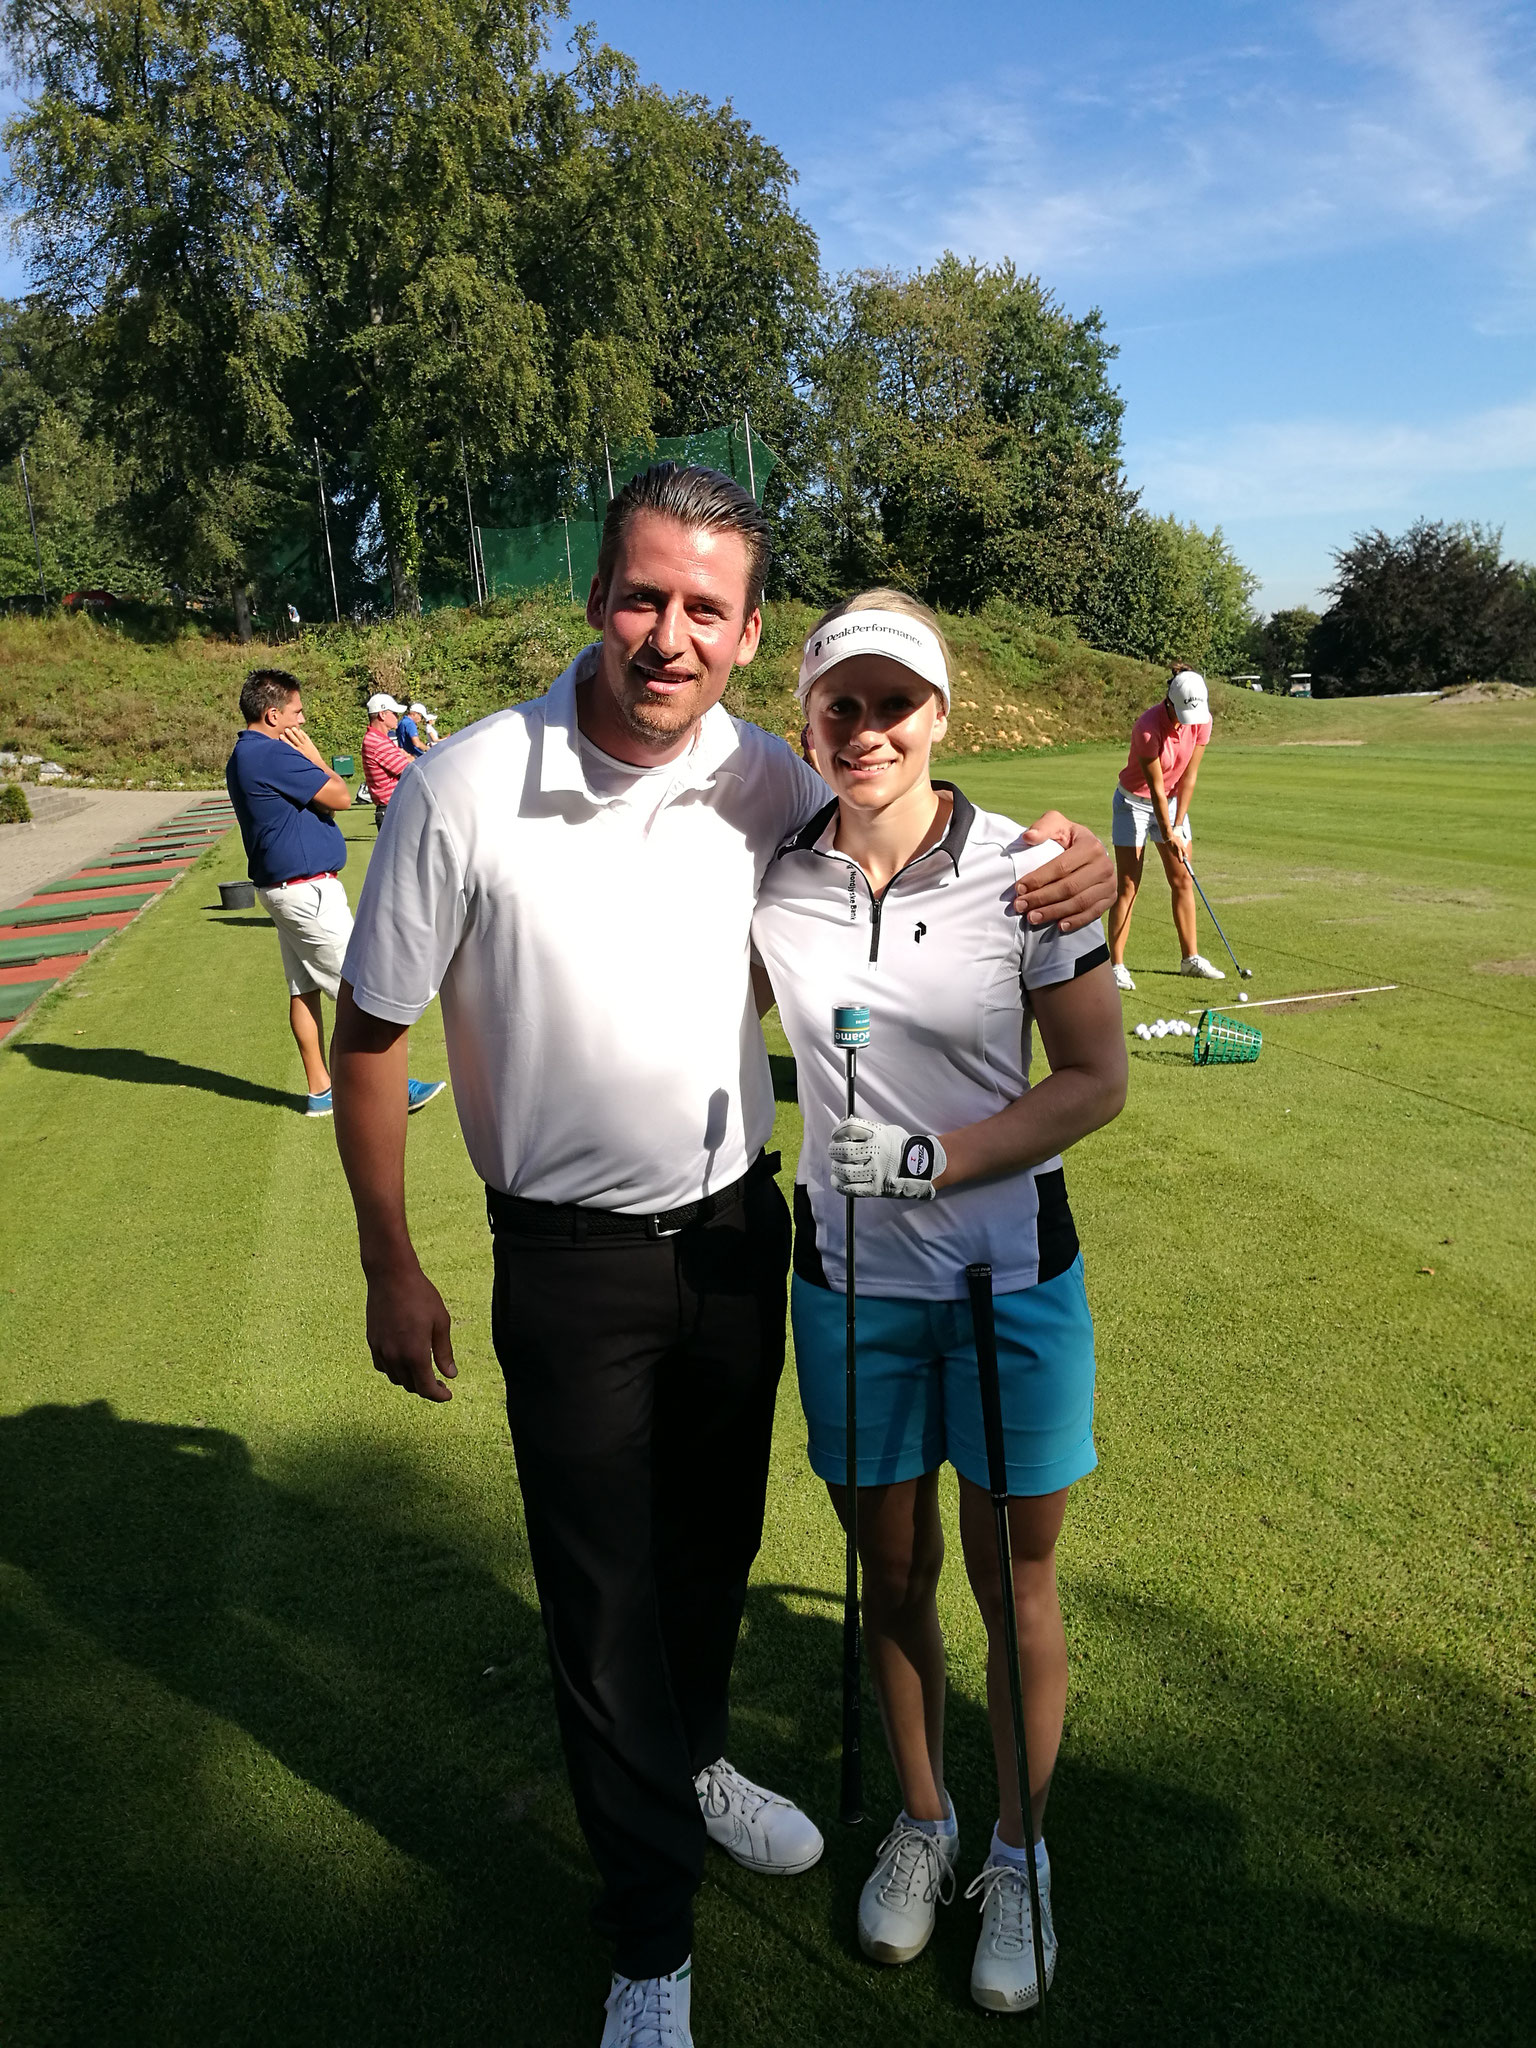 Daisy Nielsen, Ladies European Tour Player